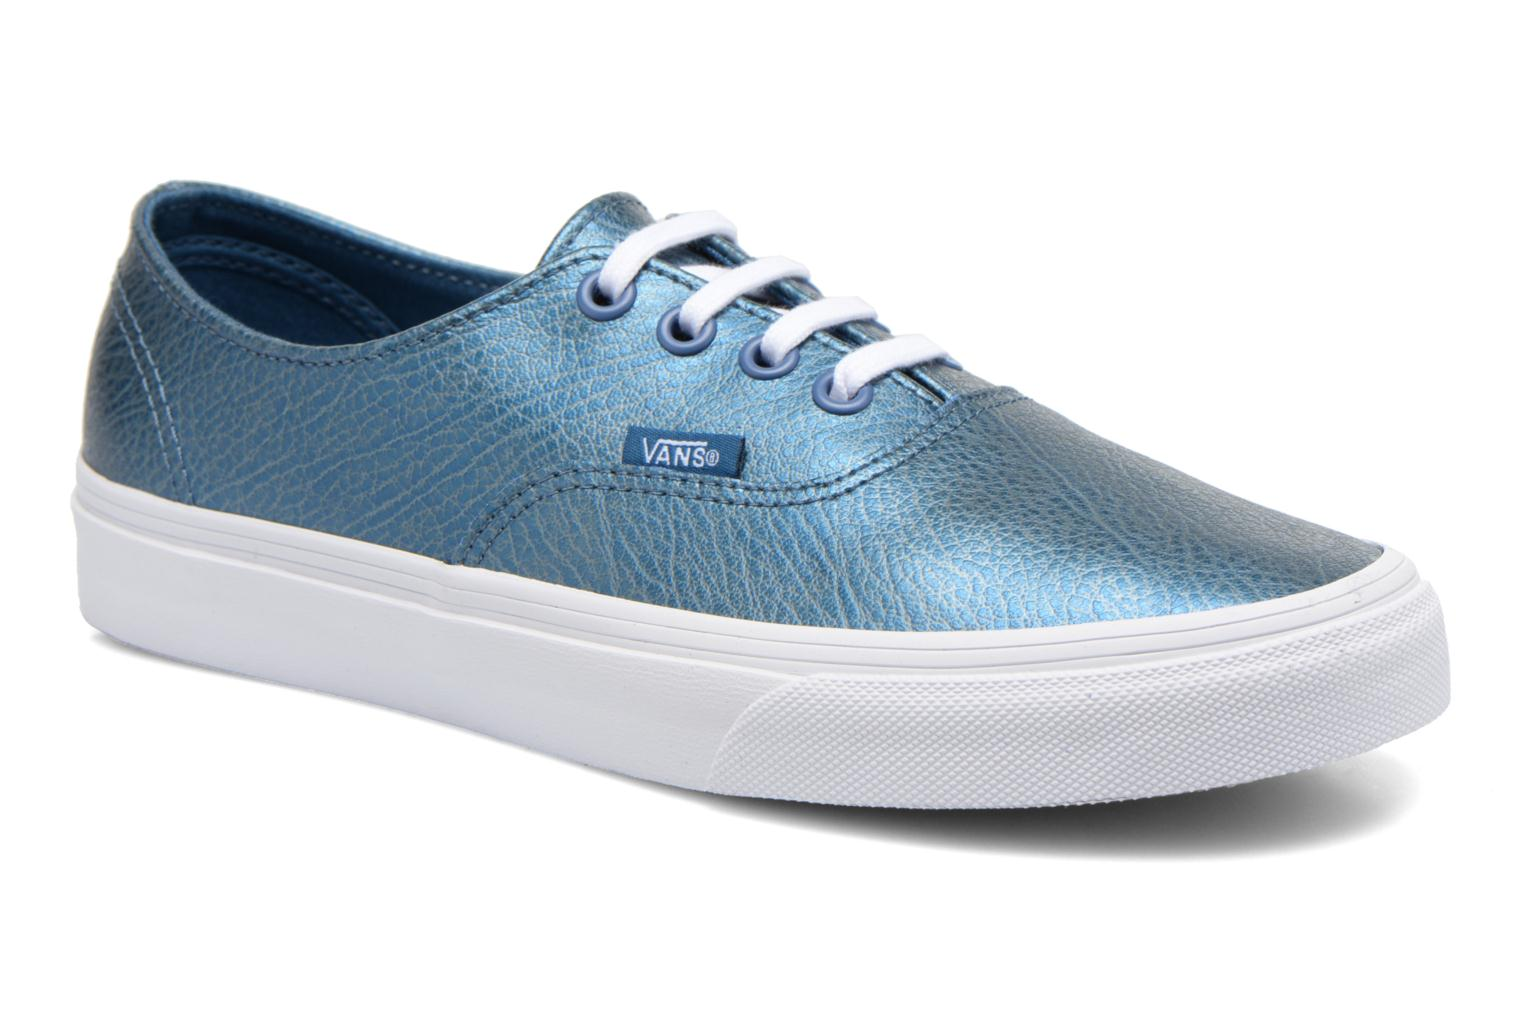 Authentic Decon W (Metallic Leather) blue